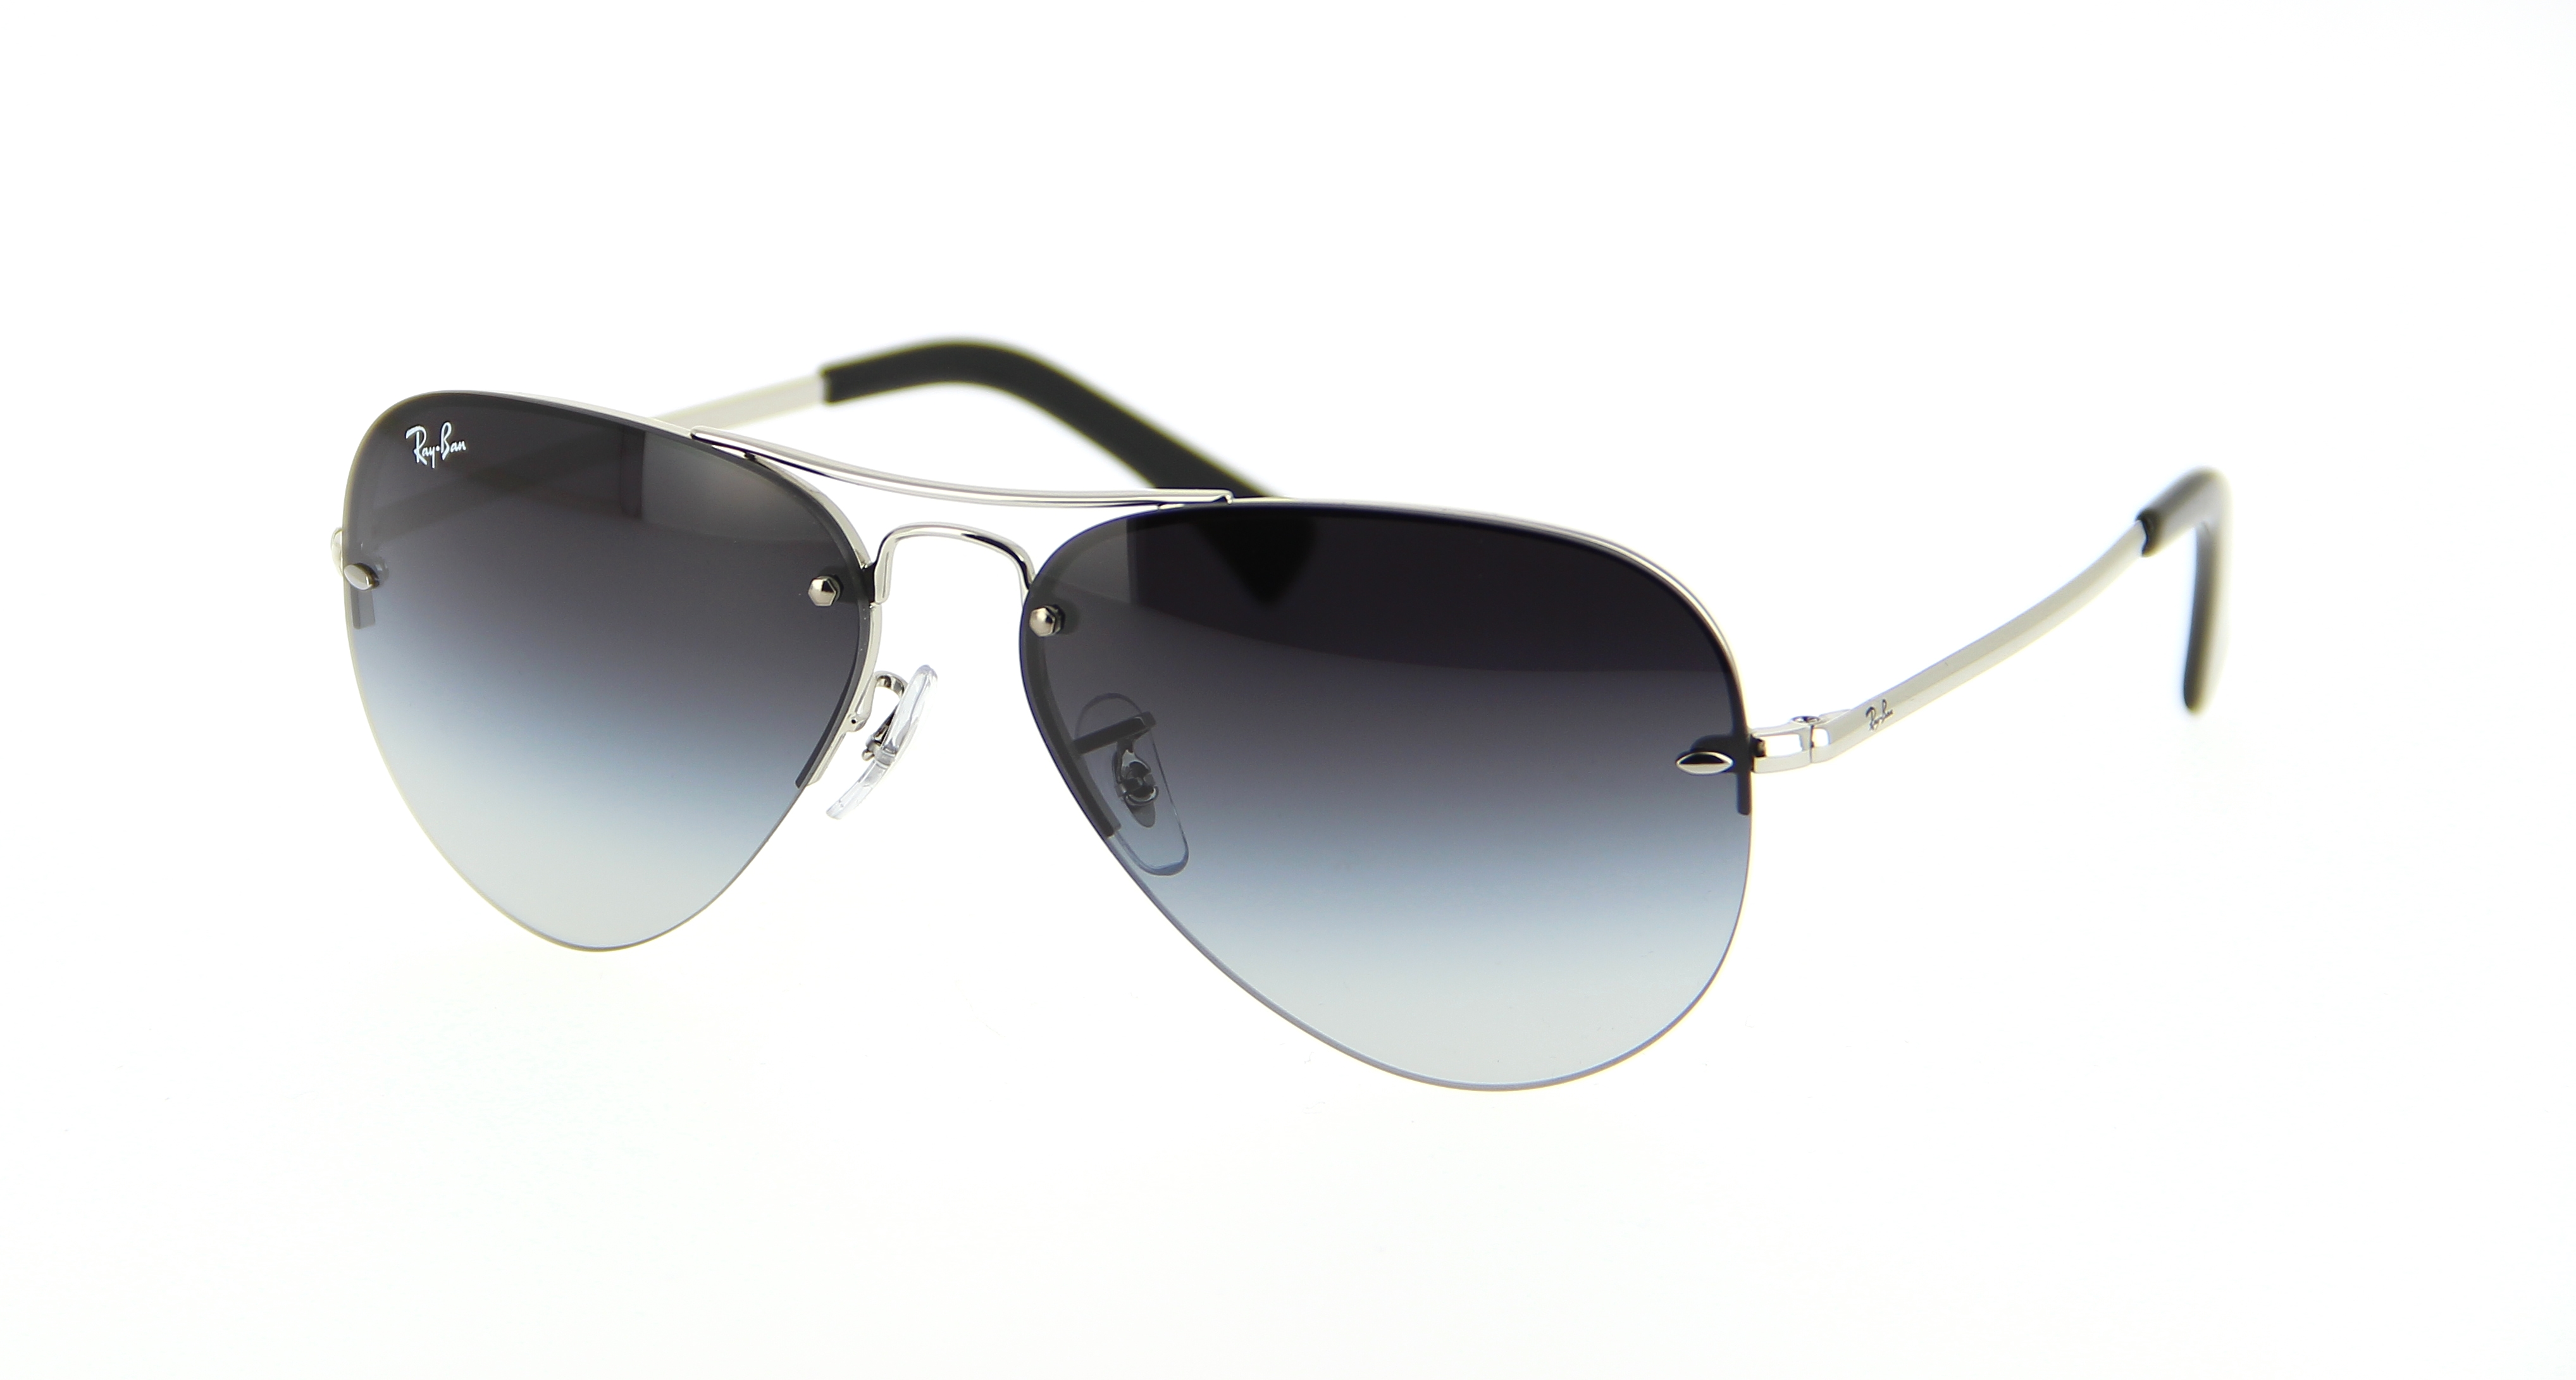 lunette solaire ray ban femme 2015